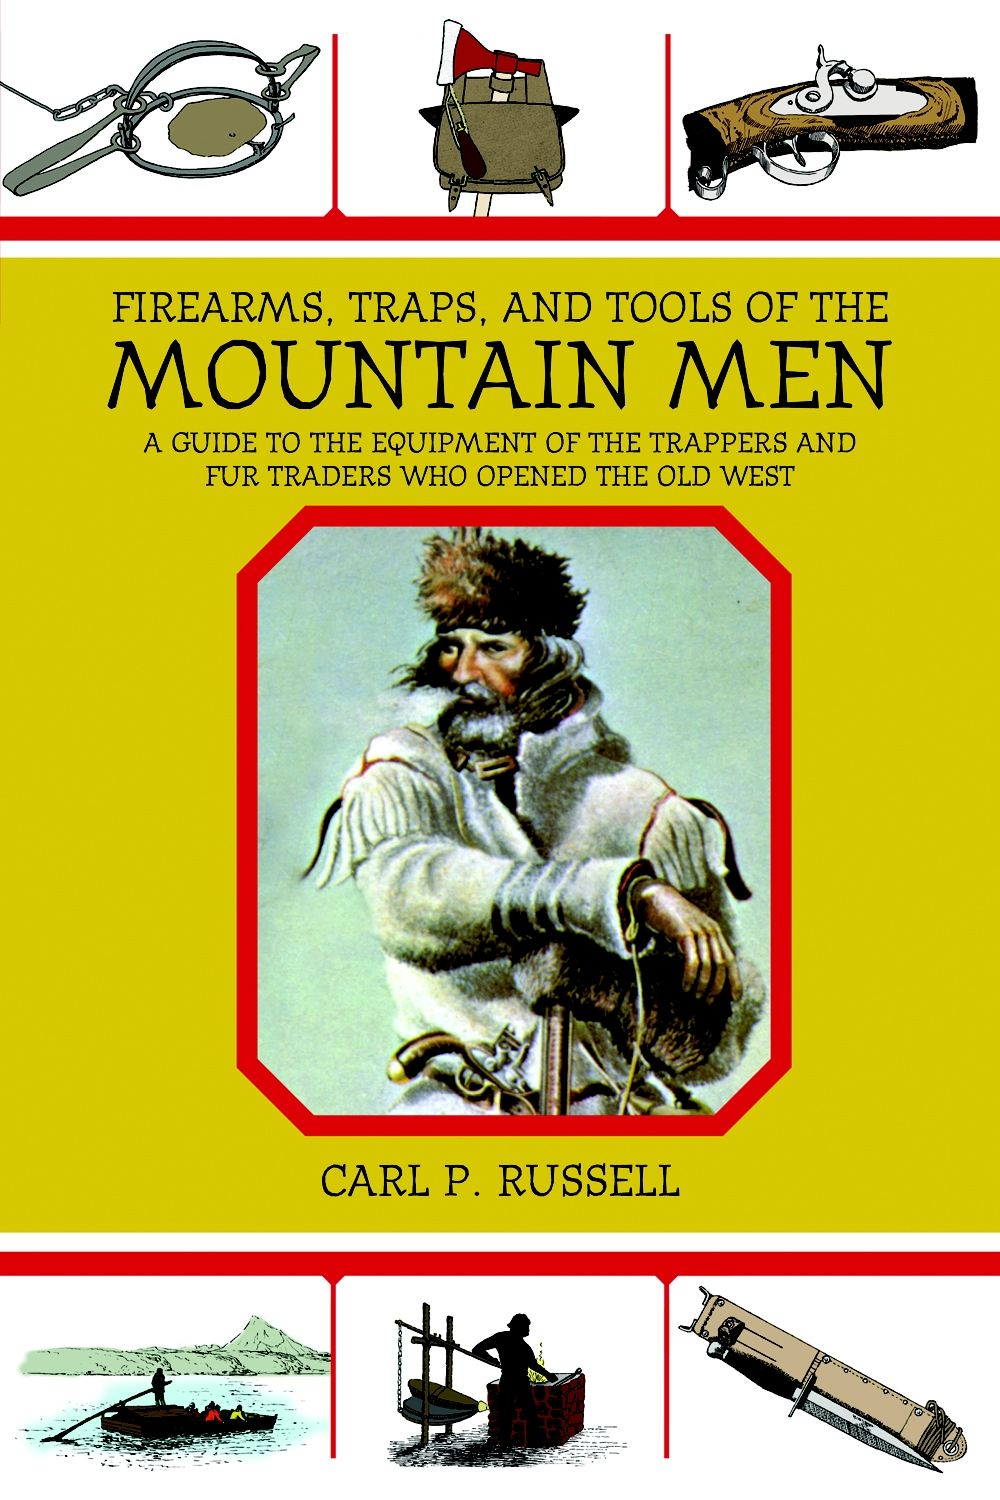 Carl P. Russell - Firearms, Traps, and Tools of Mountain Men: A Guide to the Equipment of the Trappers and Fur Traders Who Opened the Old West